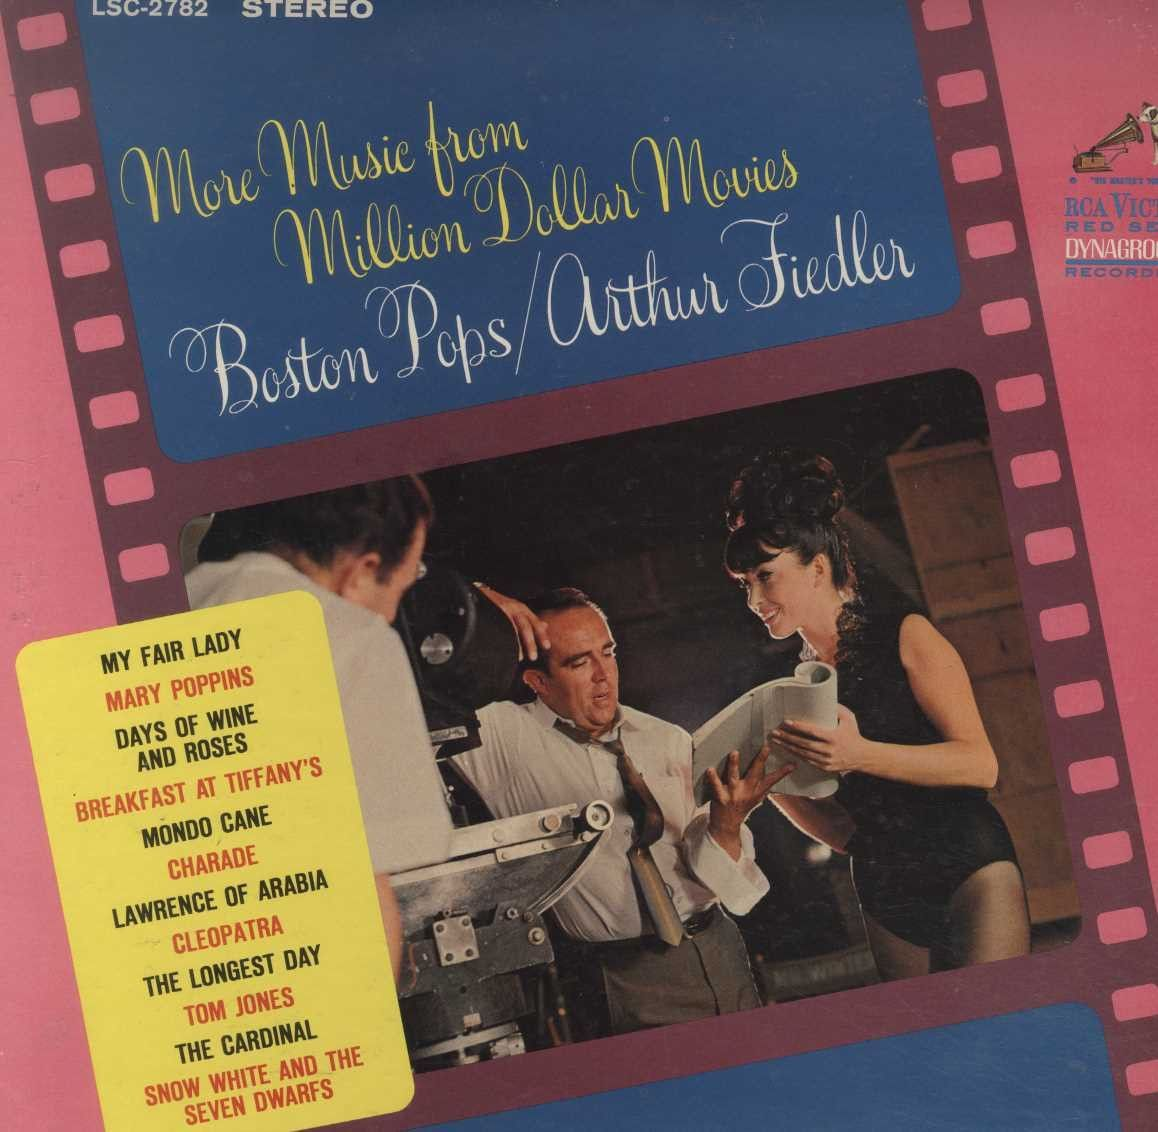 Artie Shaw Theme Song The Boston Pops Orchestra More Music From Million Dollar Movies